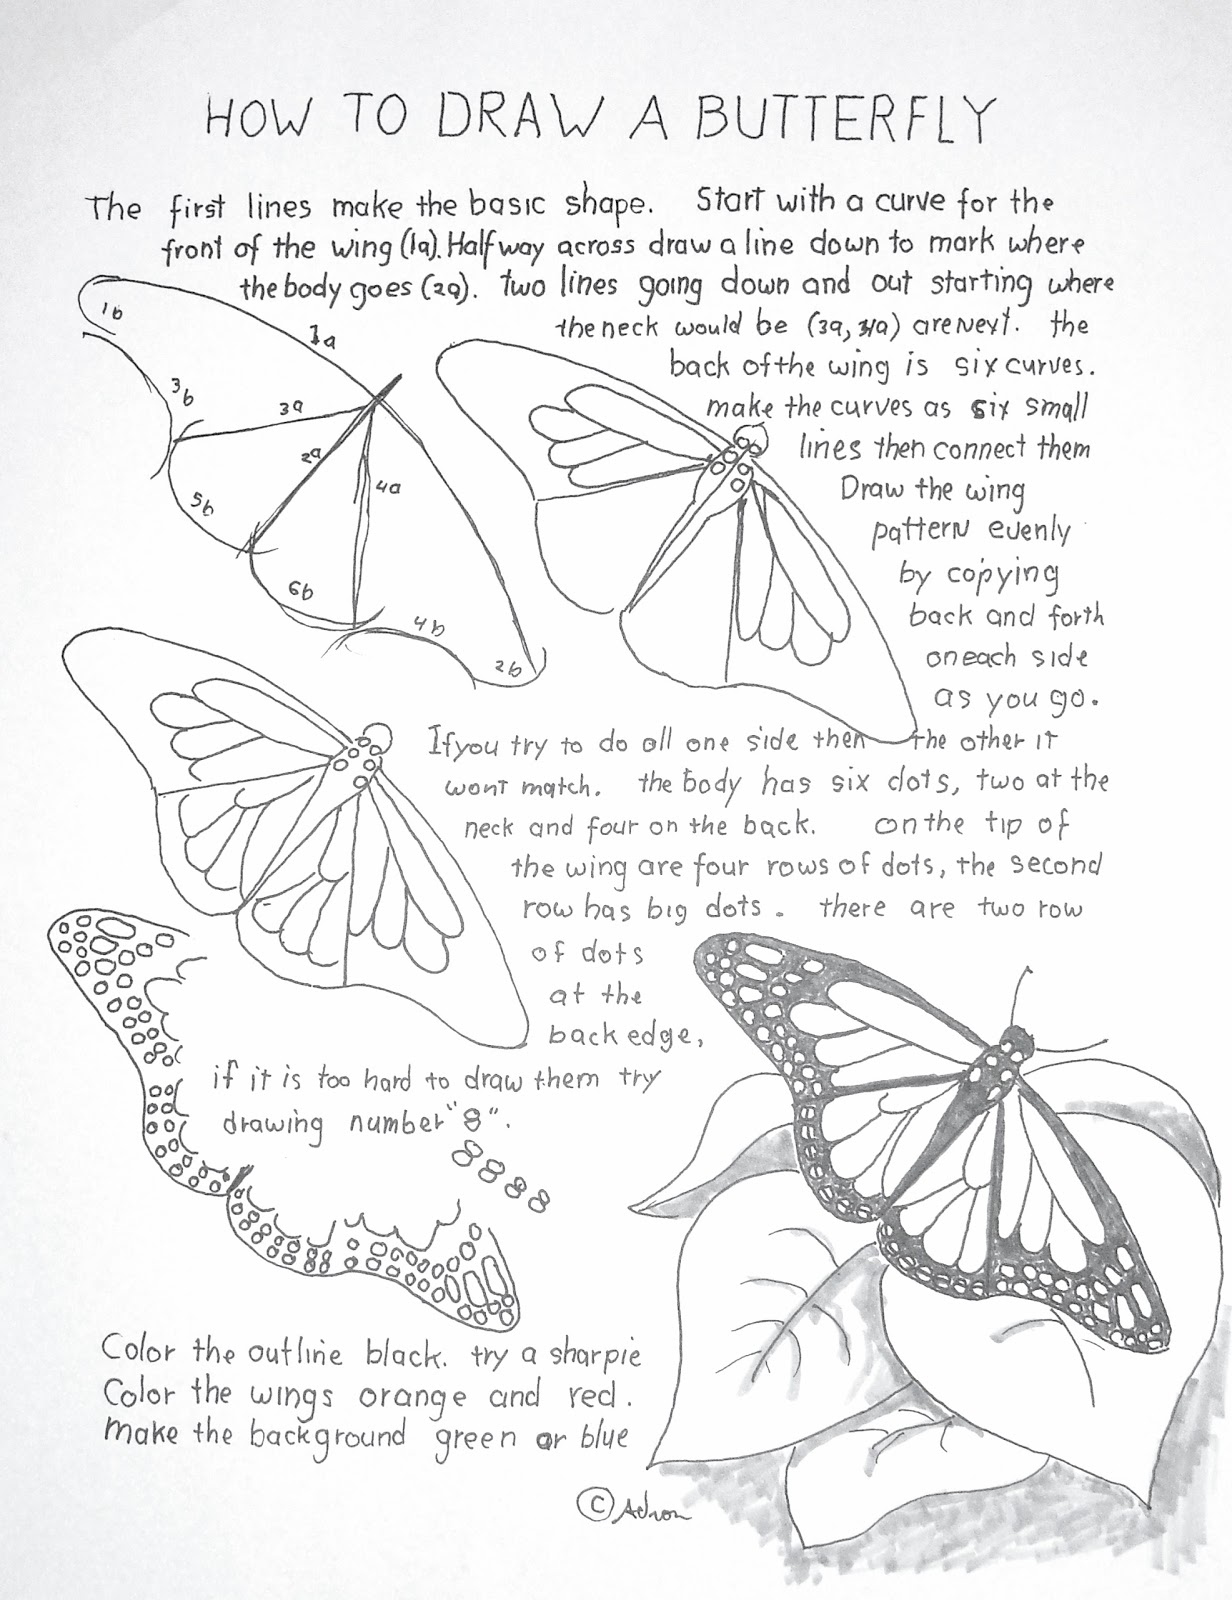 Worksheets Butterfly Worksheets how to draw worksheets for the young artist a monarch butterfly worksheet